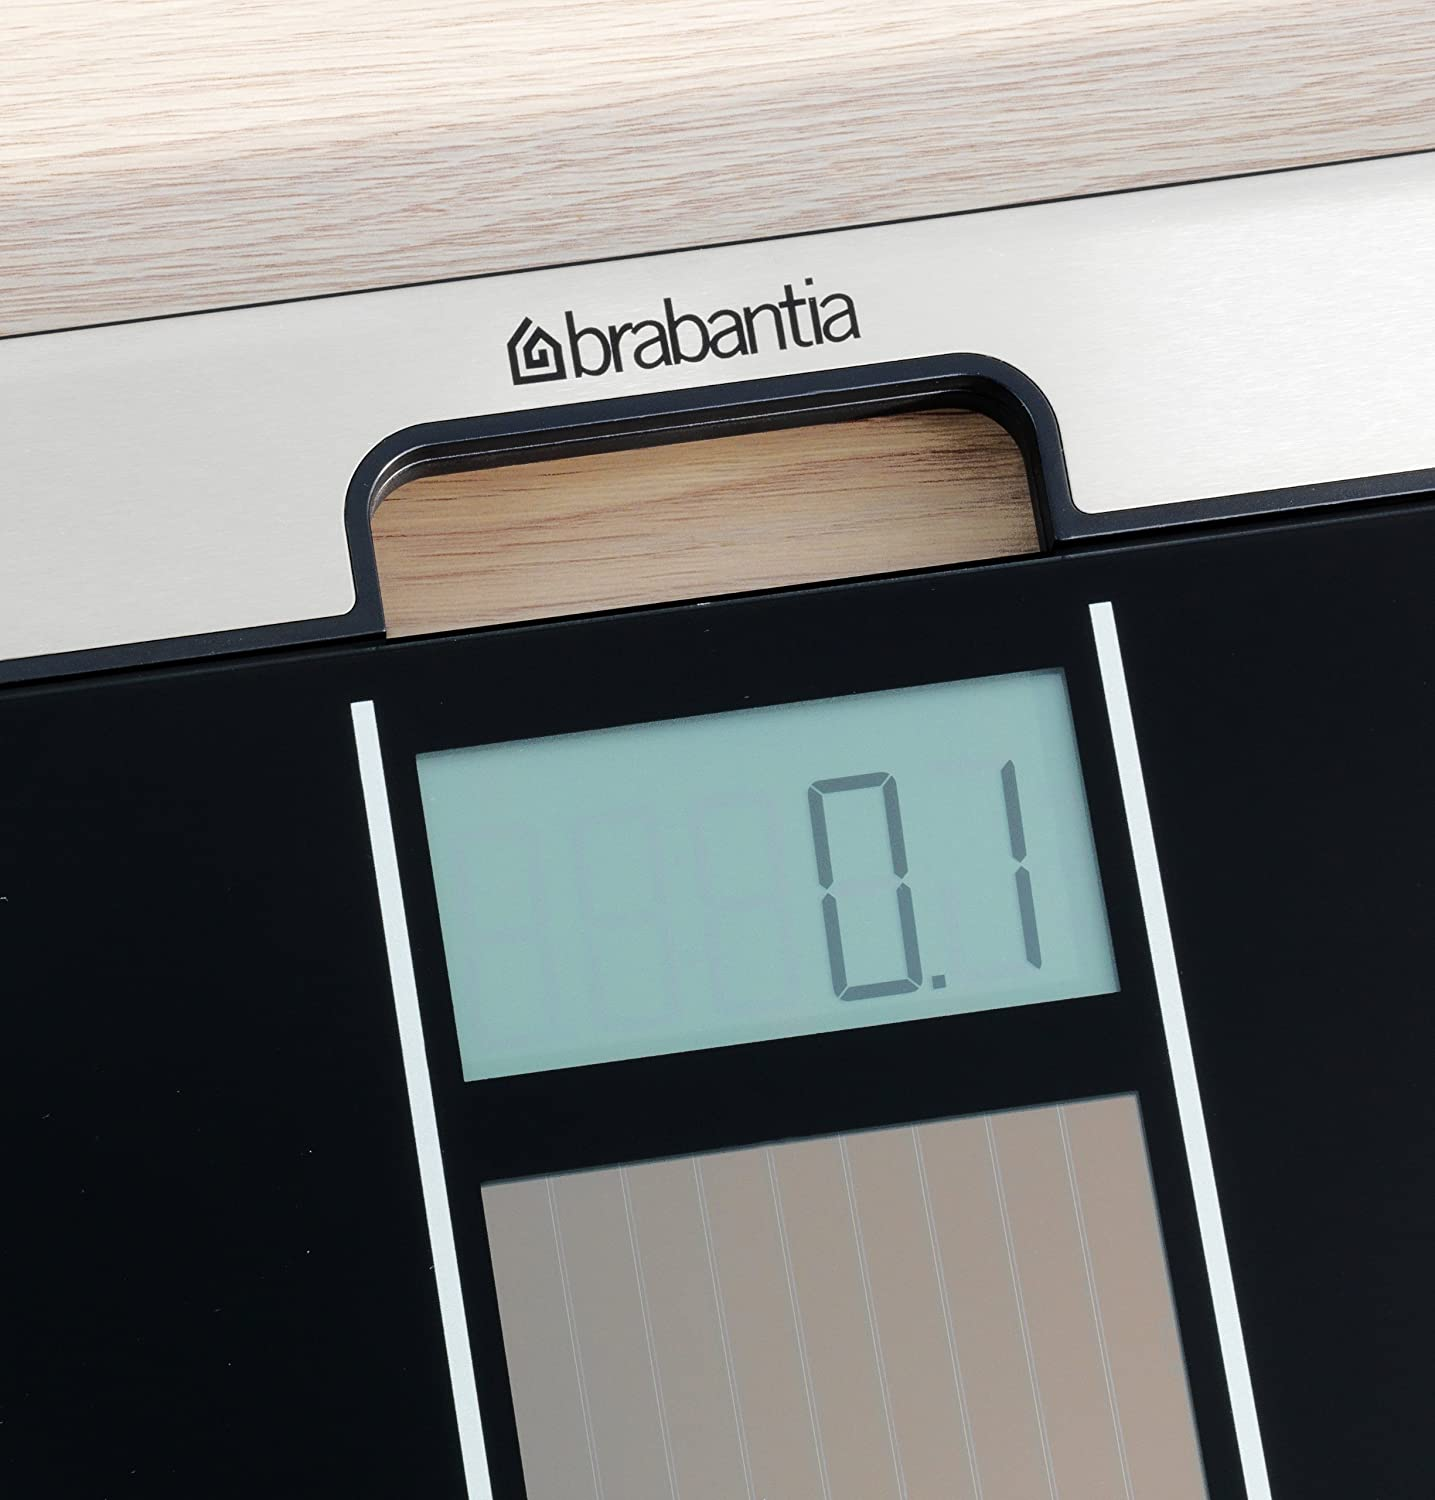 Most Accurate Bathroom Scale 2014: Brabantia 481109 Solar Powered Bathroom Scales